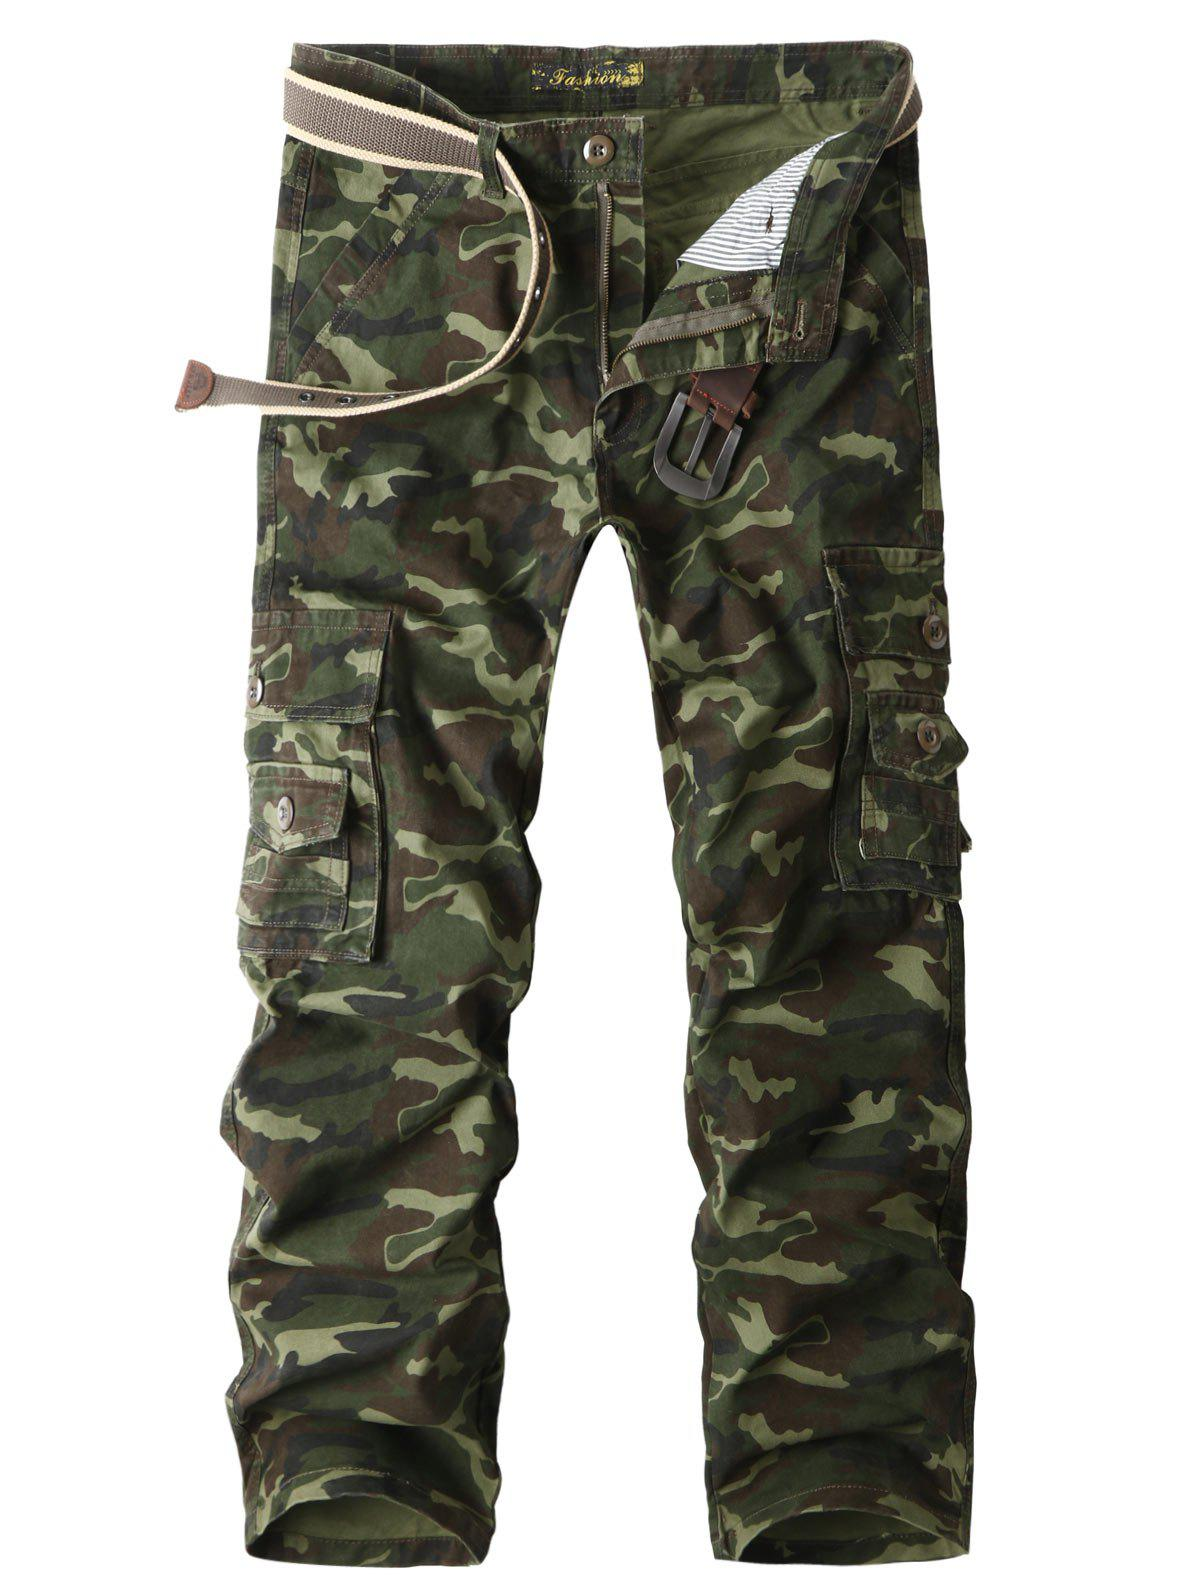 Discount Flap Pockets Straight Camouflage Cargo Pants